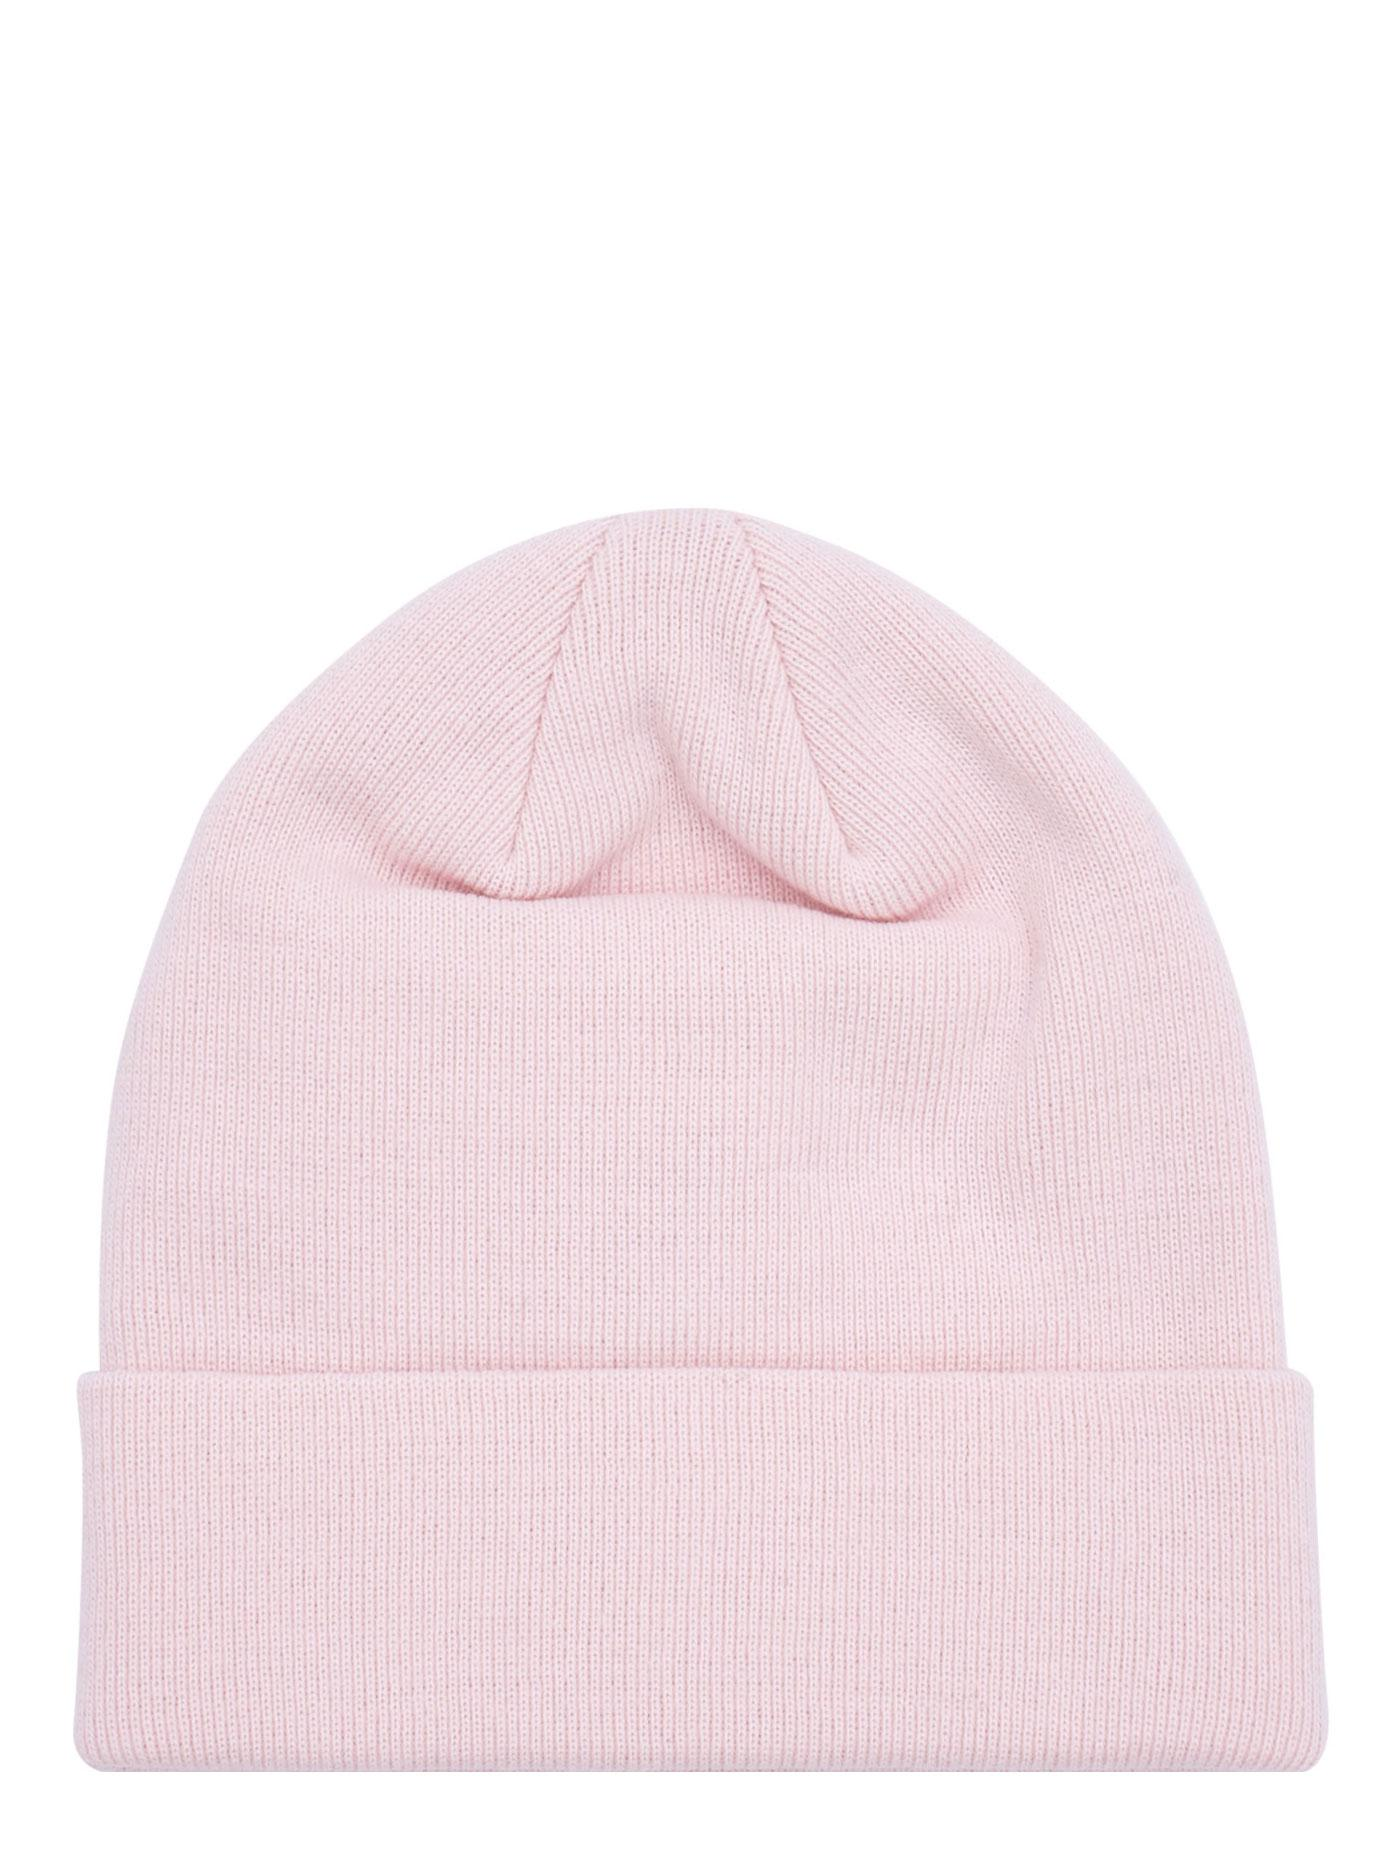 45b85a5395b Lyst - Givenchy Logo Leather Patch Beanie in Pink